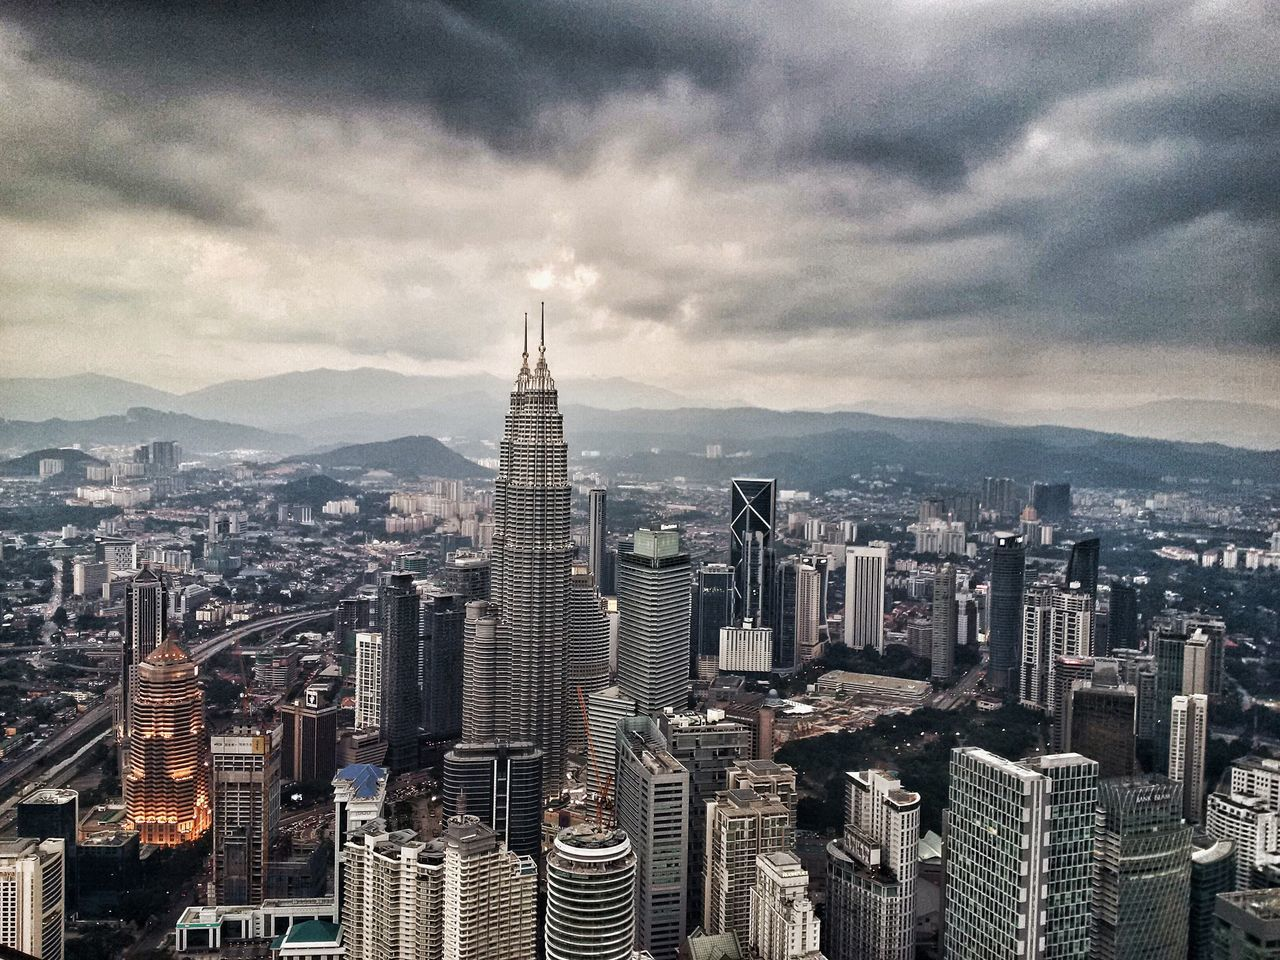 Kuala Lumpur ASIA Kuala Lumpur Malaysia  Petronas Twin Towers Skyscraper KLCC Tower Petronastowers Buildings Cityscape City Storm Cloud Storm Coming Stormy Weather Feel The Journey My Year My View The City Light Neighborhood Map The Architect - 2017 EyeEm Awards